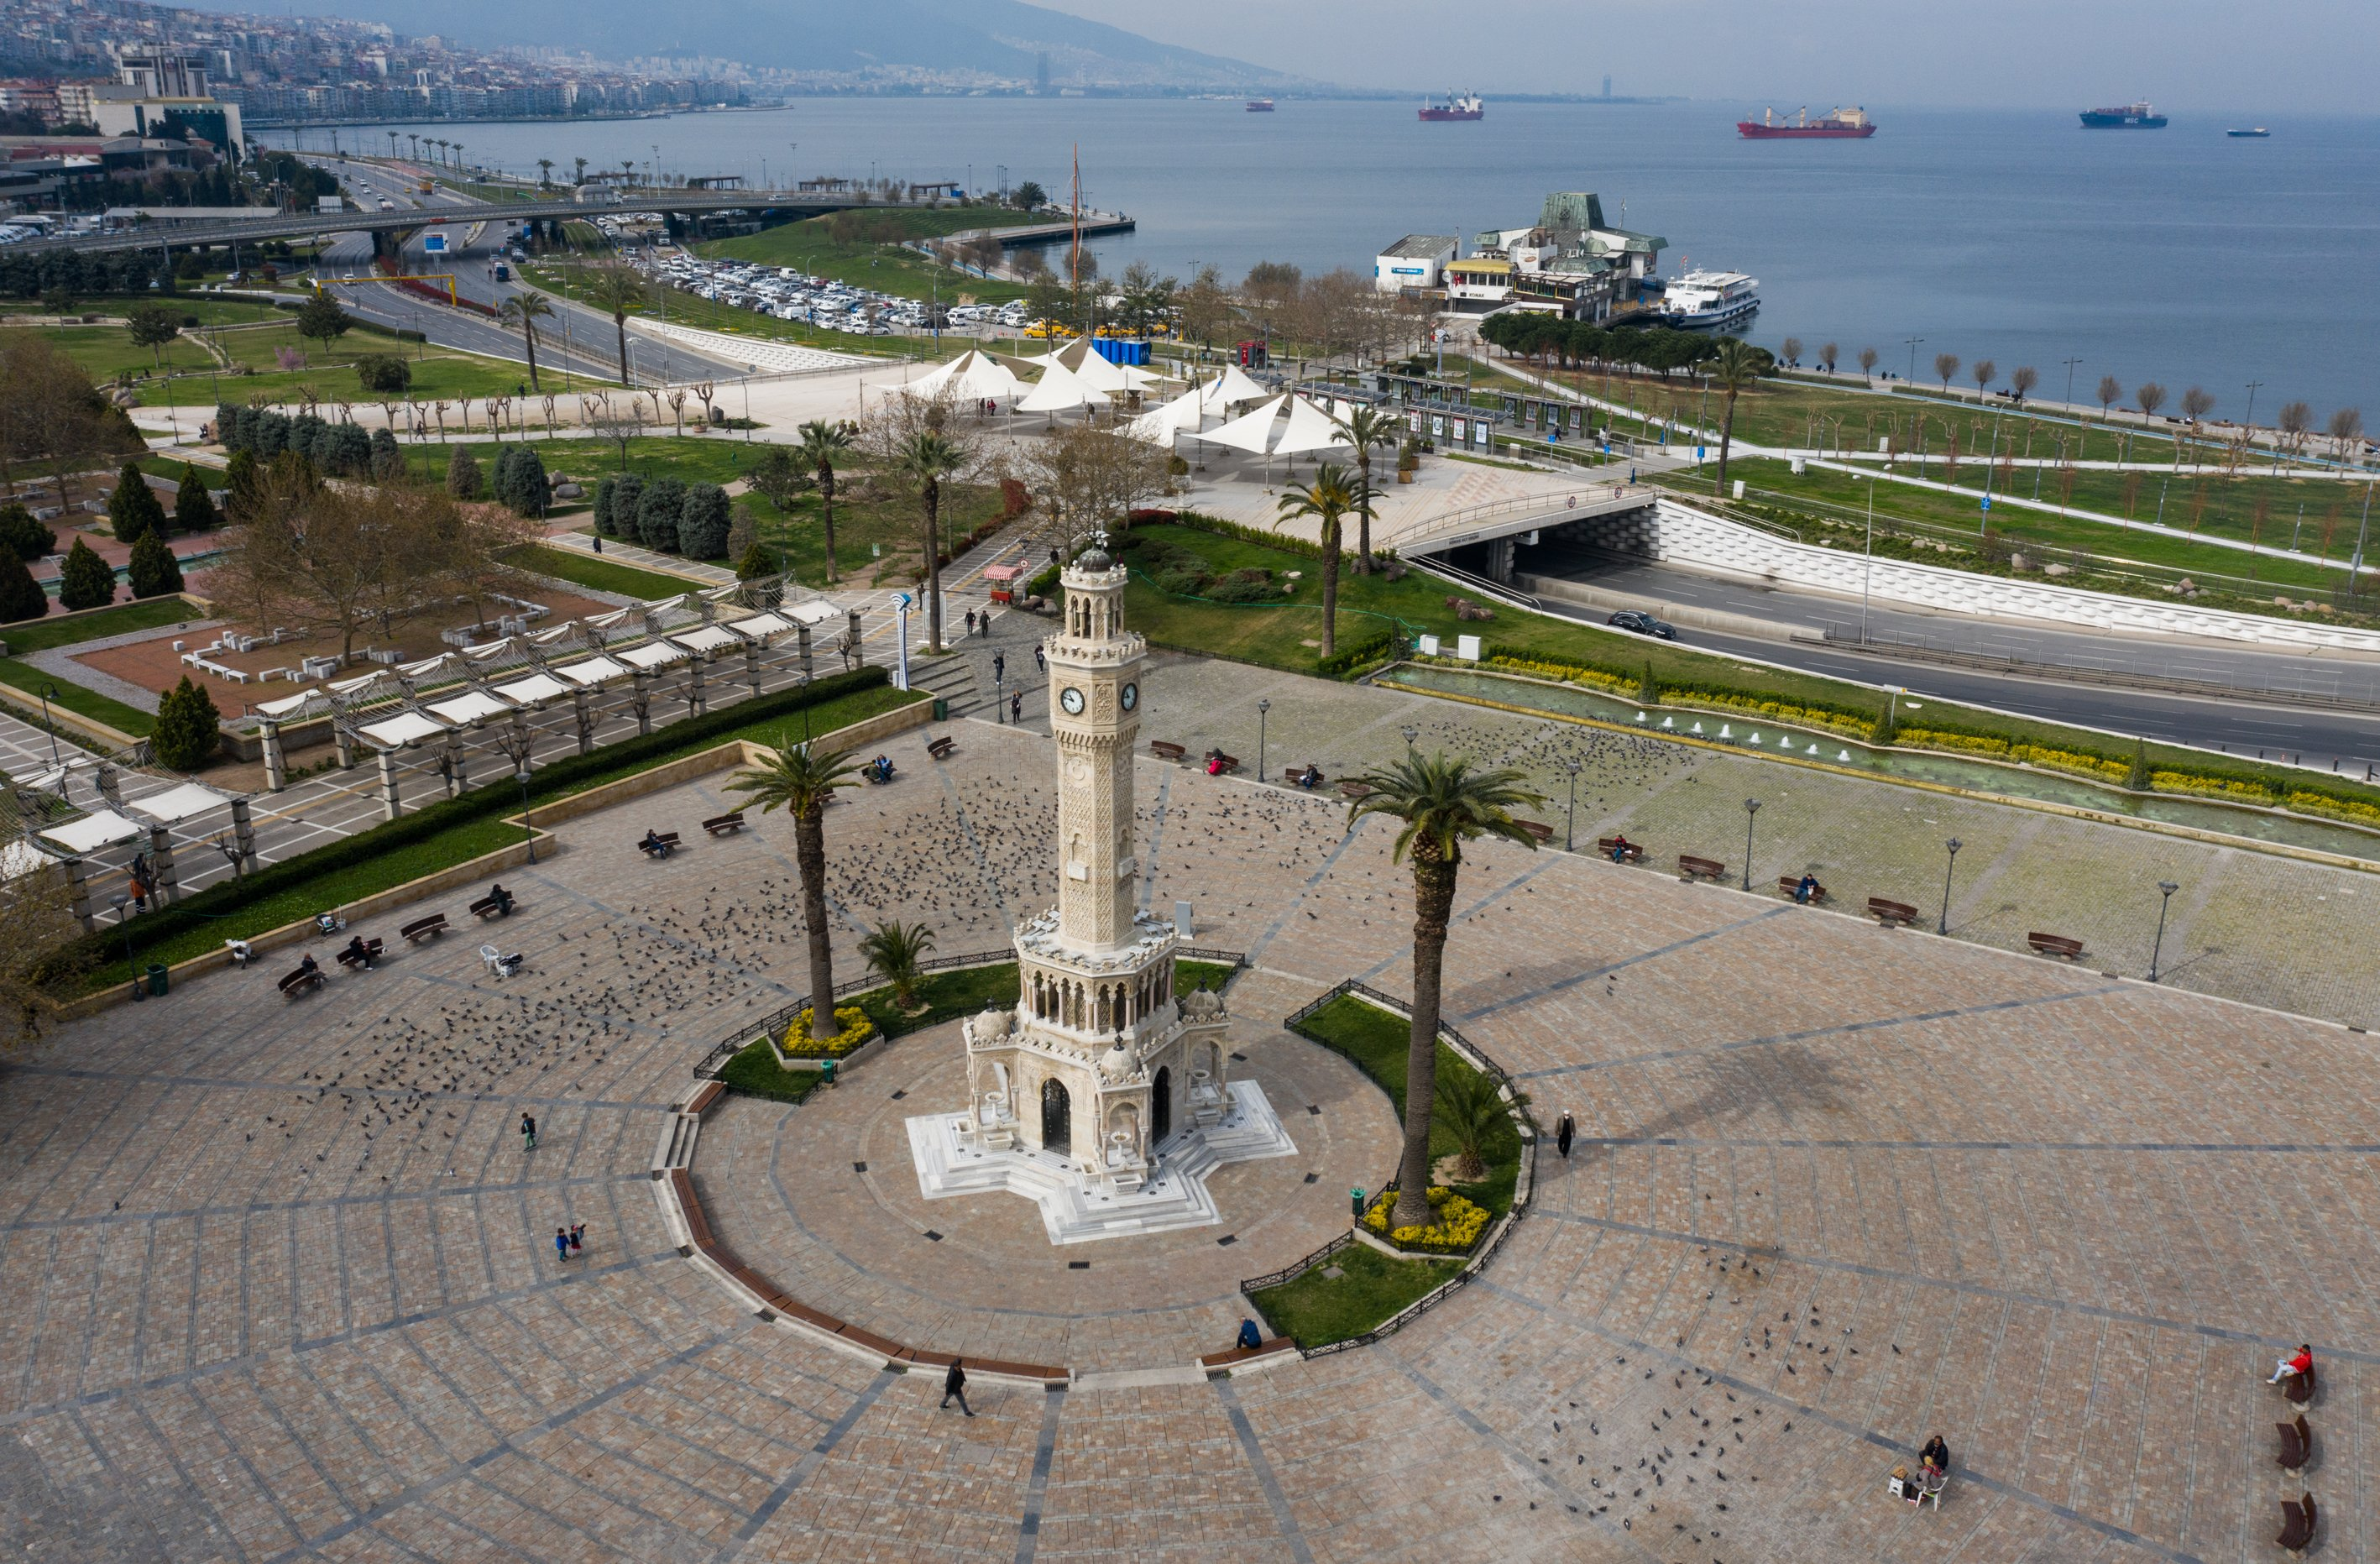 Konak Square in the western city of İzmir, a famed venue gathering crowds every day, is empty save for birds and a few people, Wednesday, March 25, 2020. (AA Photo)